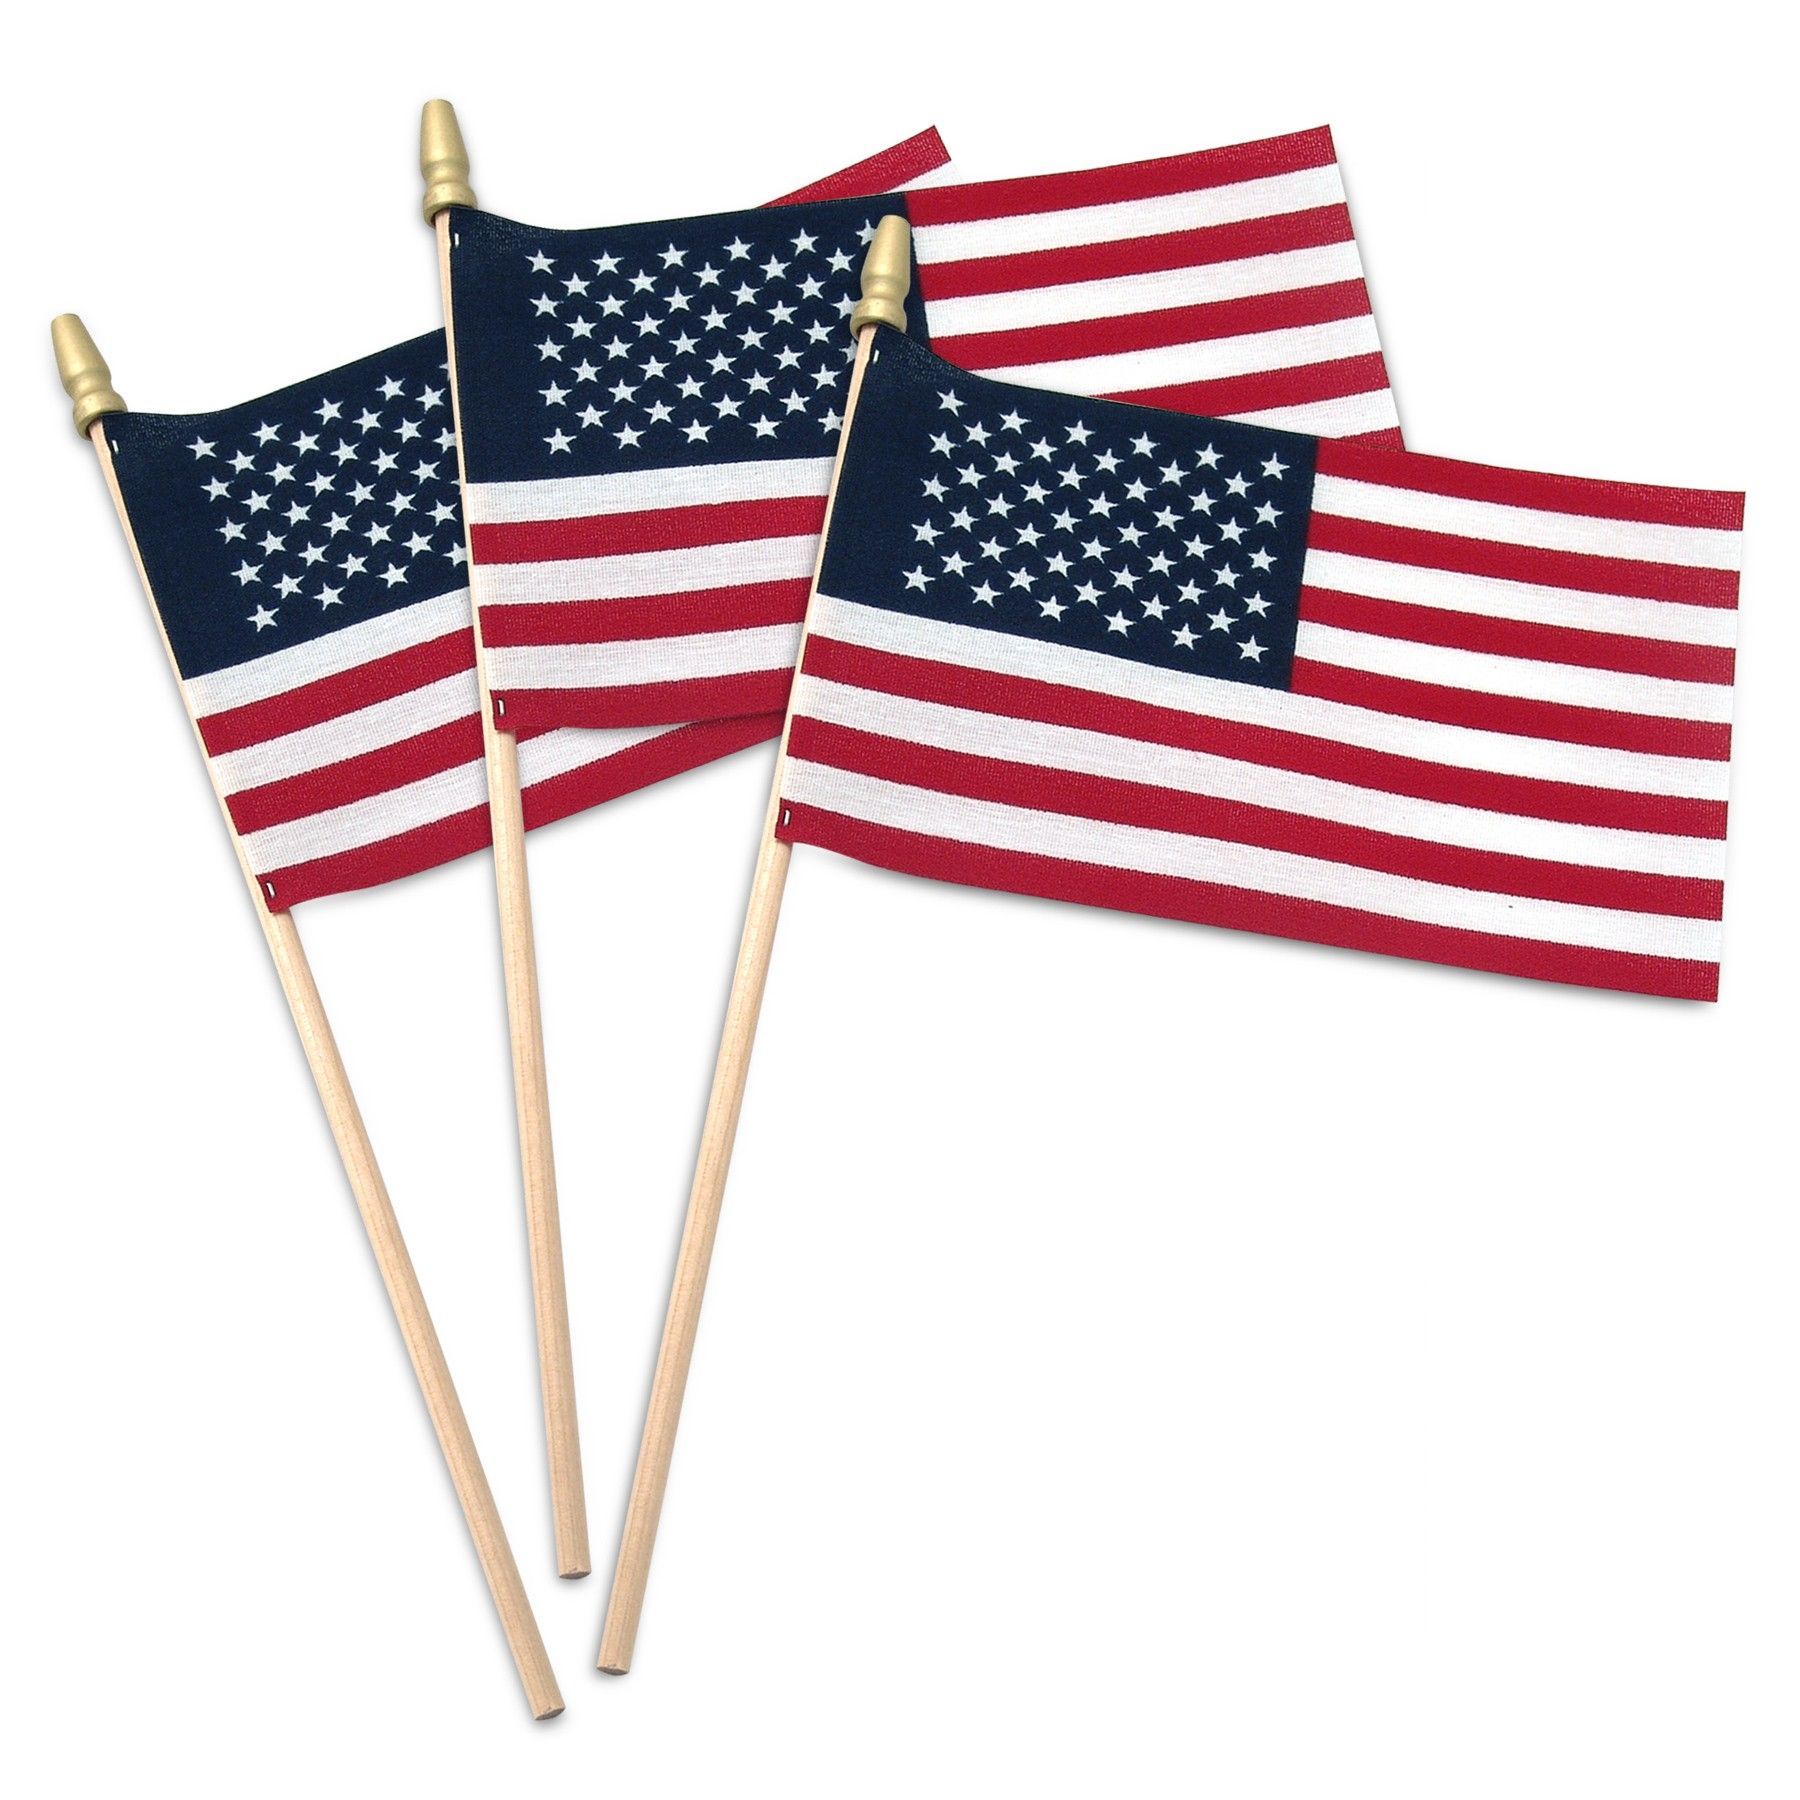 Made In The Usa Flag Multi Pack To Use With Sousa March Listening Activities Flag Store Flag Buy American